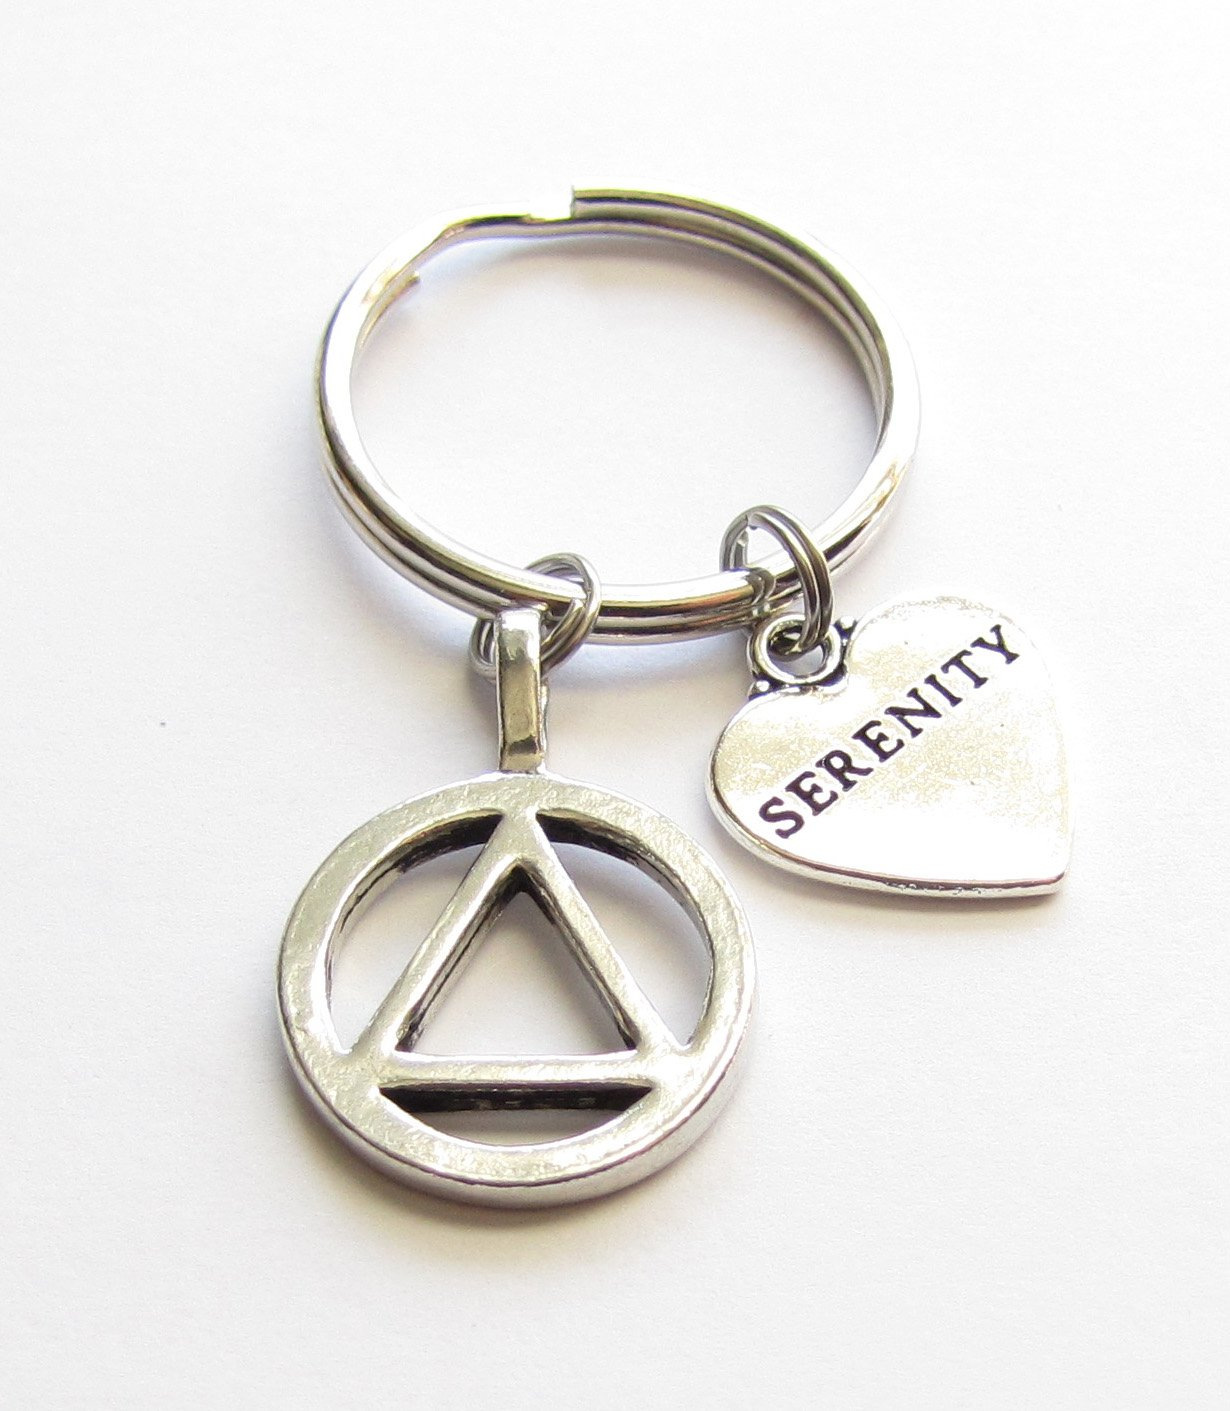 Alcoholics Anonymous AA Symbol Serenity Charm 12 Step Anniversary Recovery Gift by Heart Projects (Image #1)